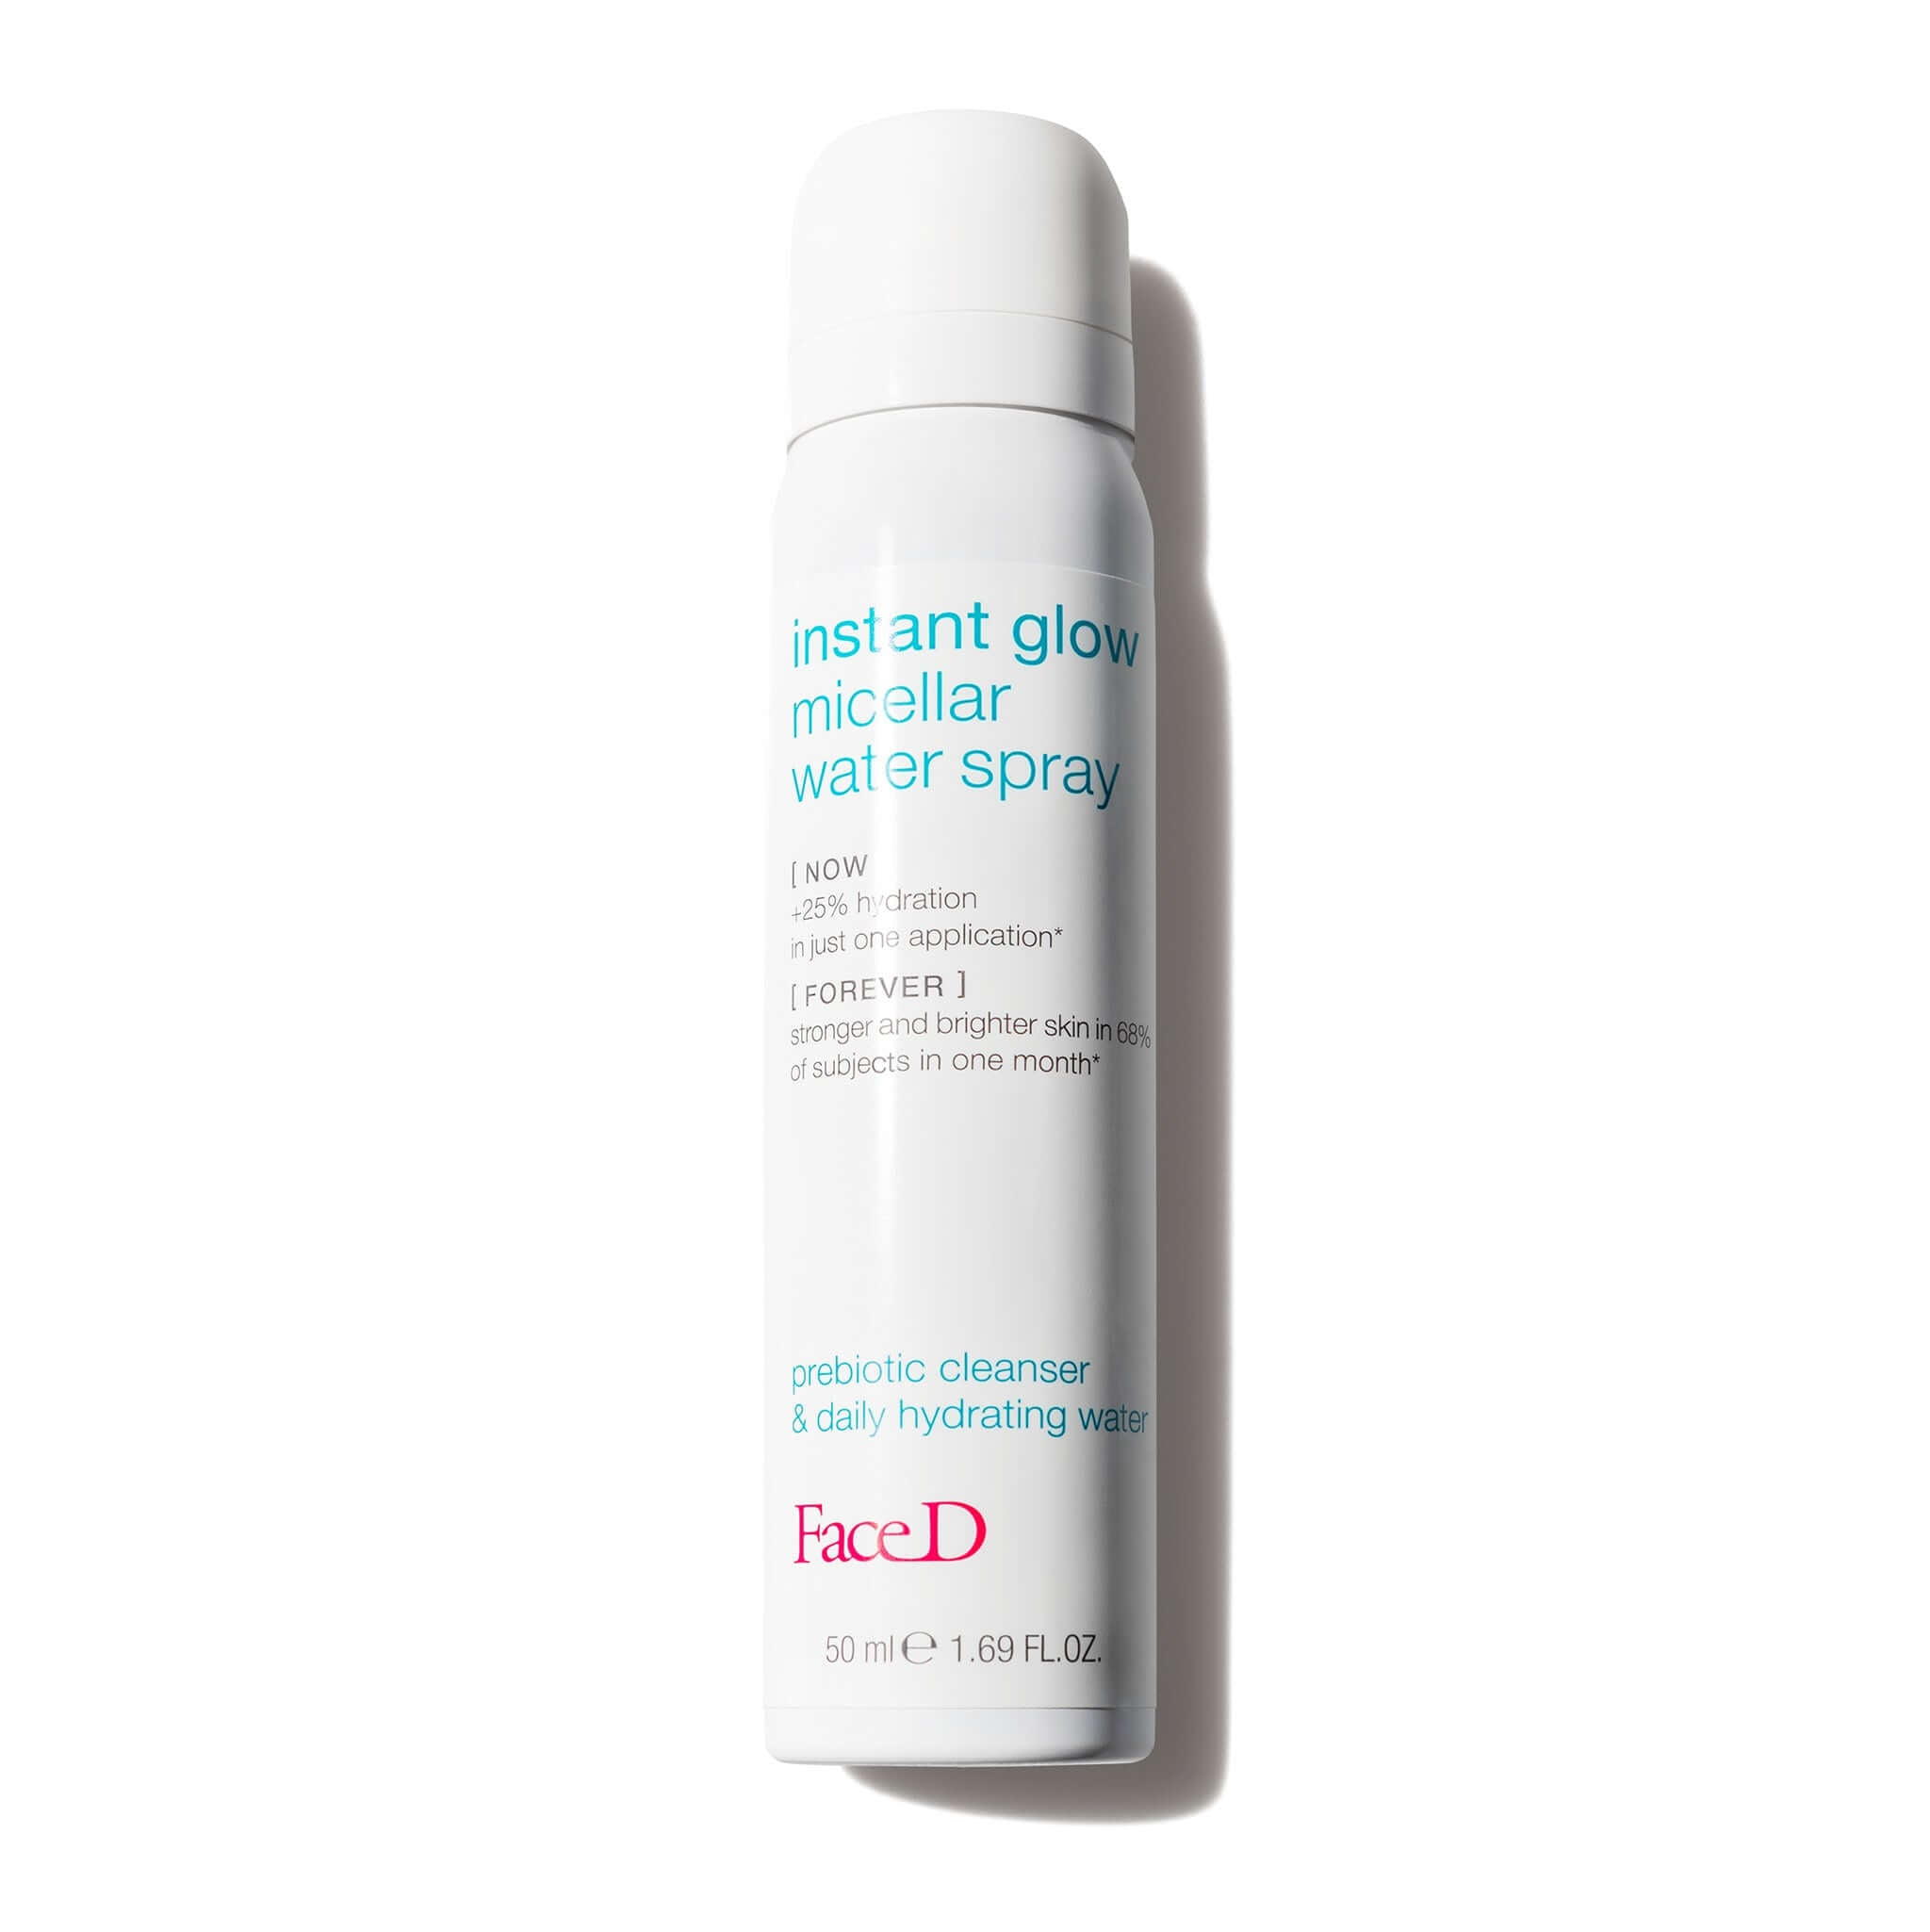 Mini-Instant-Glow-Micellar-Water-Spray-FaceD-Cleansers || Instant-Glow-acqua-micellare-mini-FaceD-Struccanti